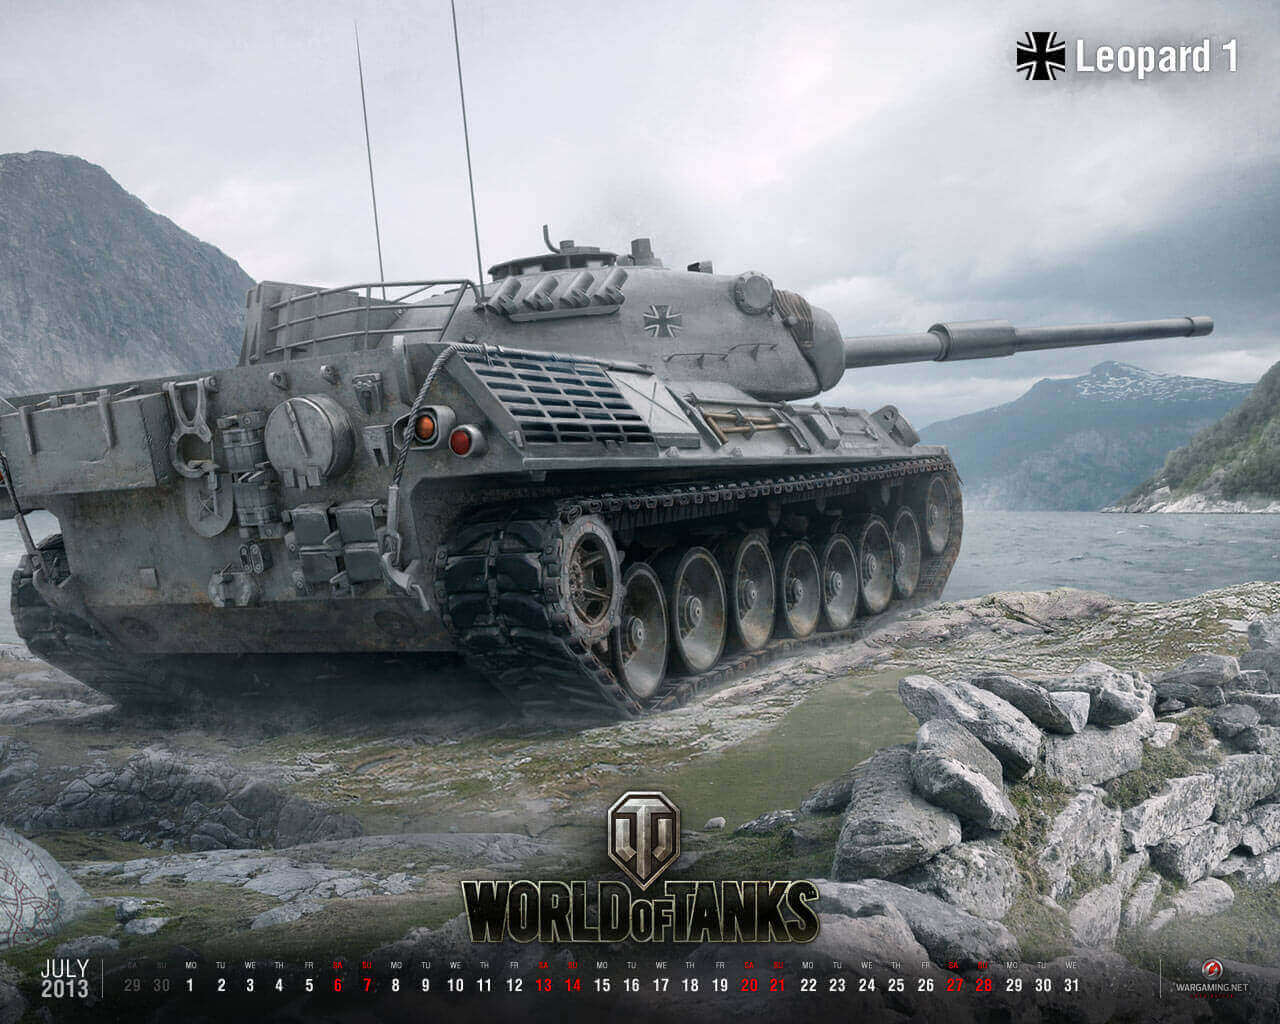 July Calendar 2013 (New): Leopard 1